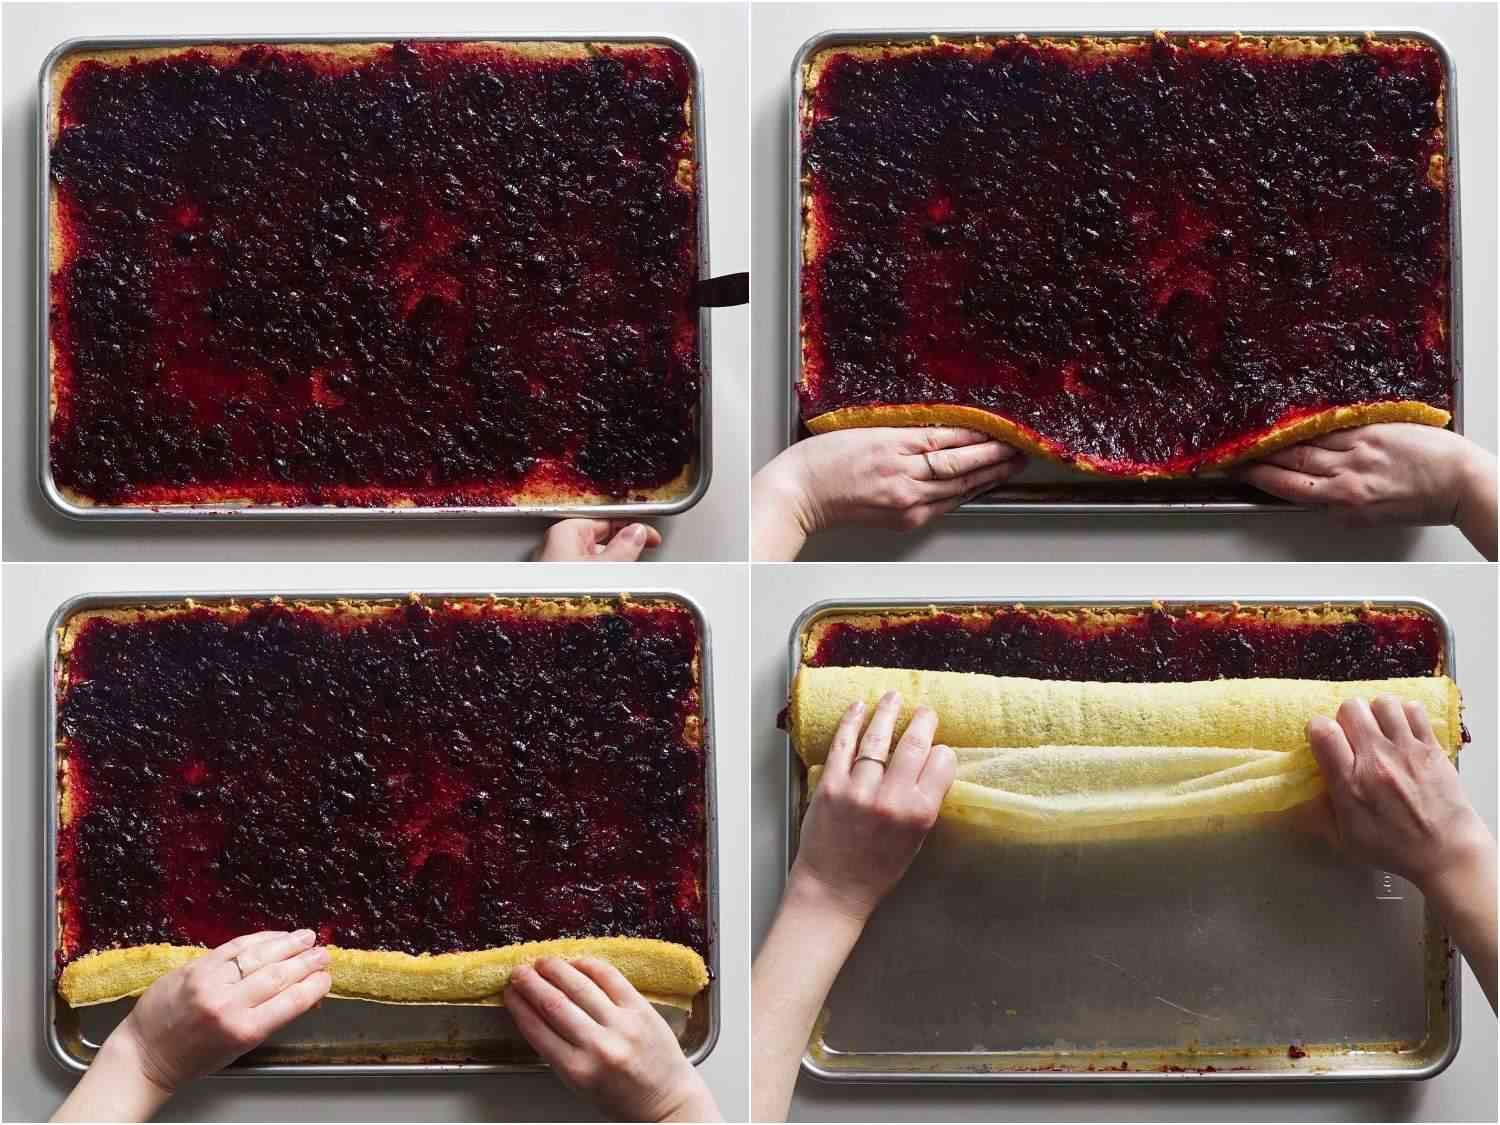 Rolling the sheet cake with cranberry jam